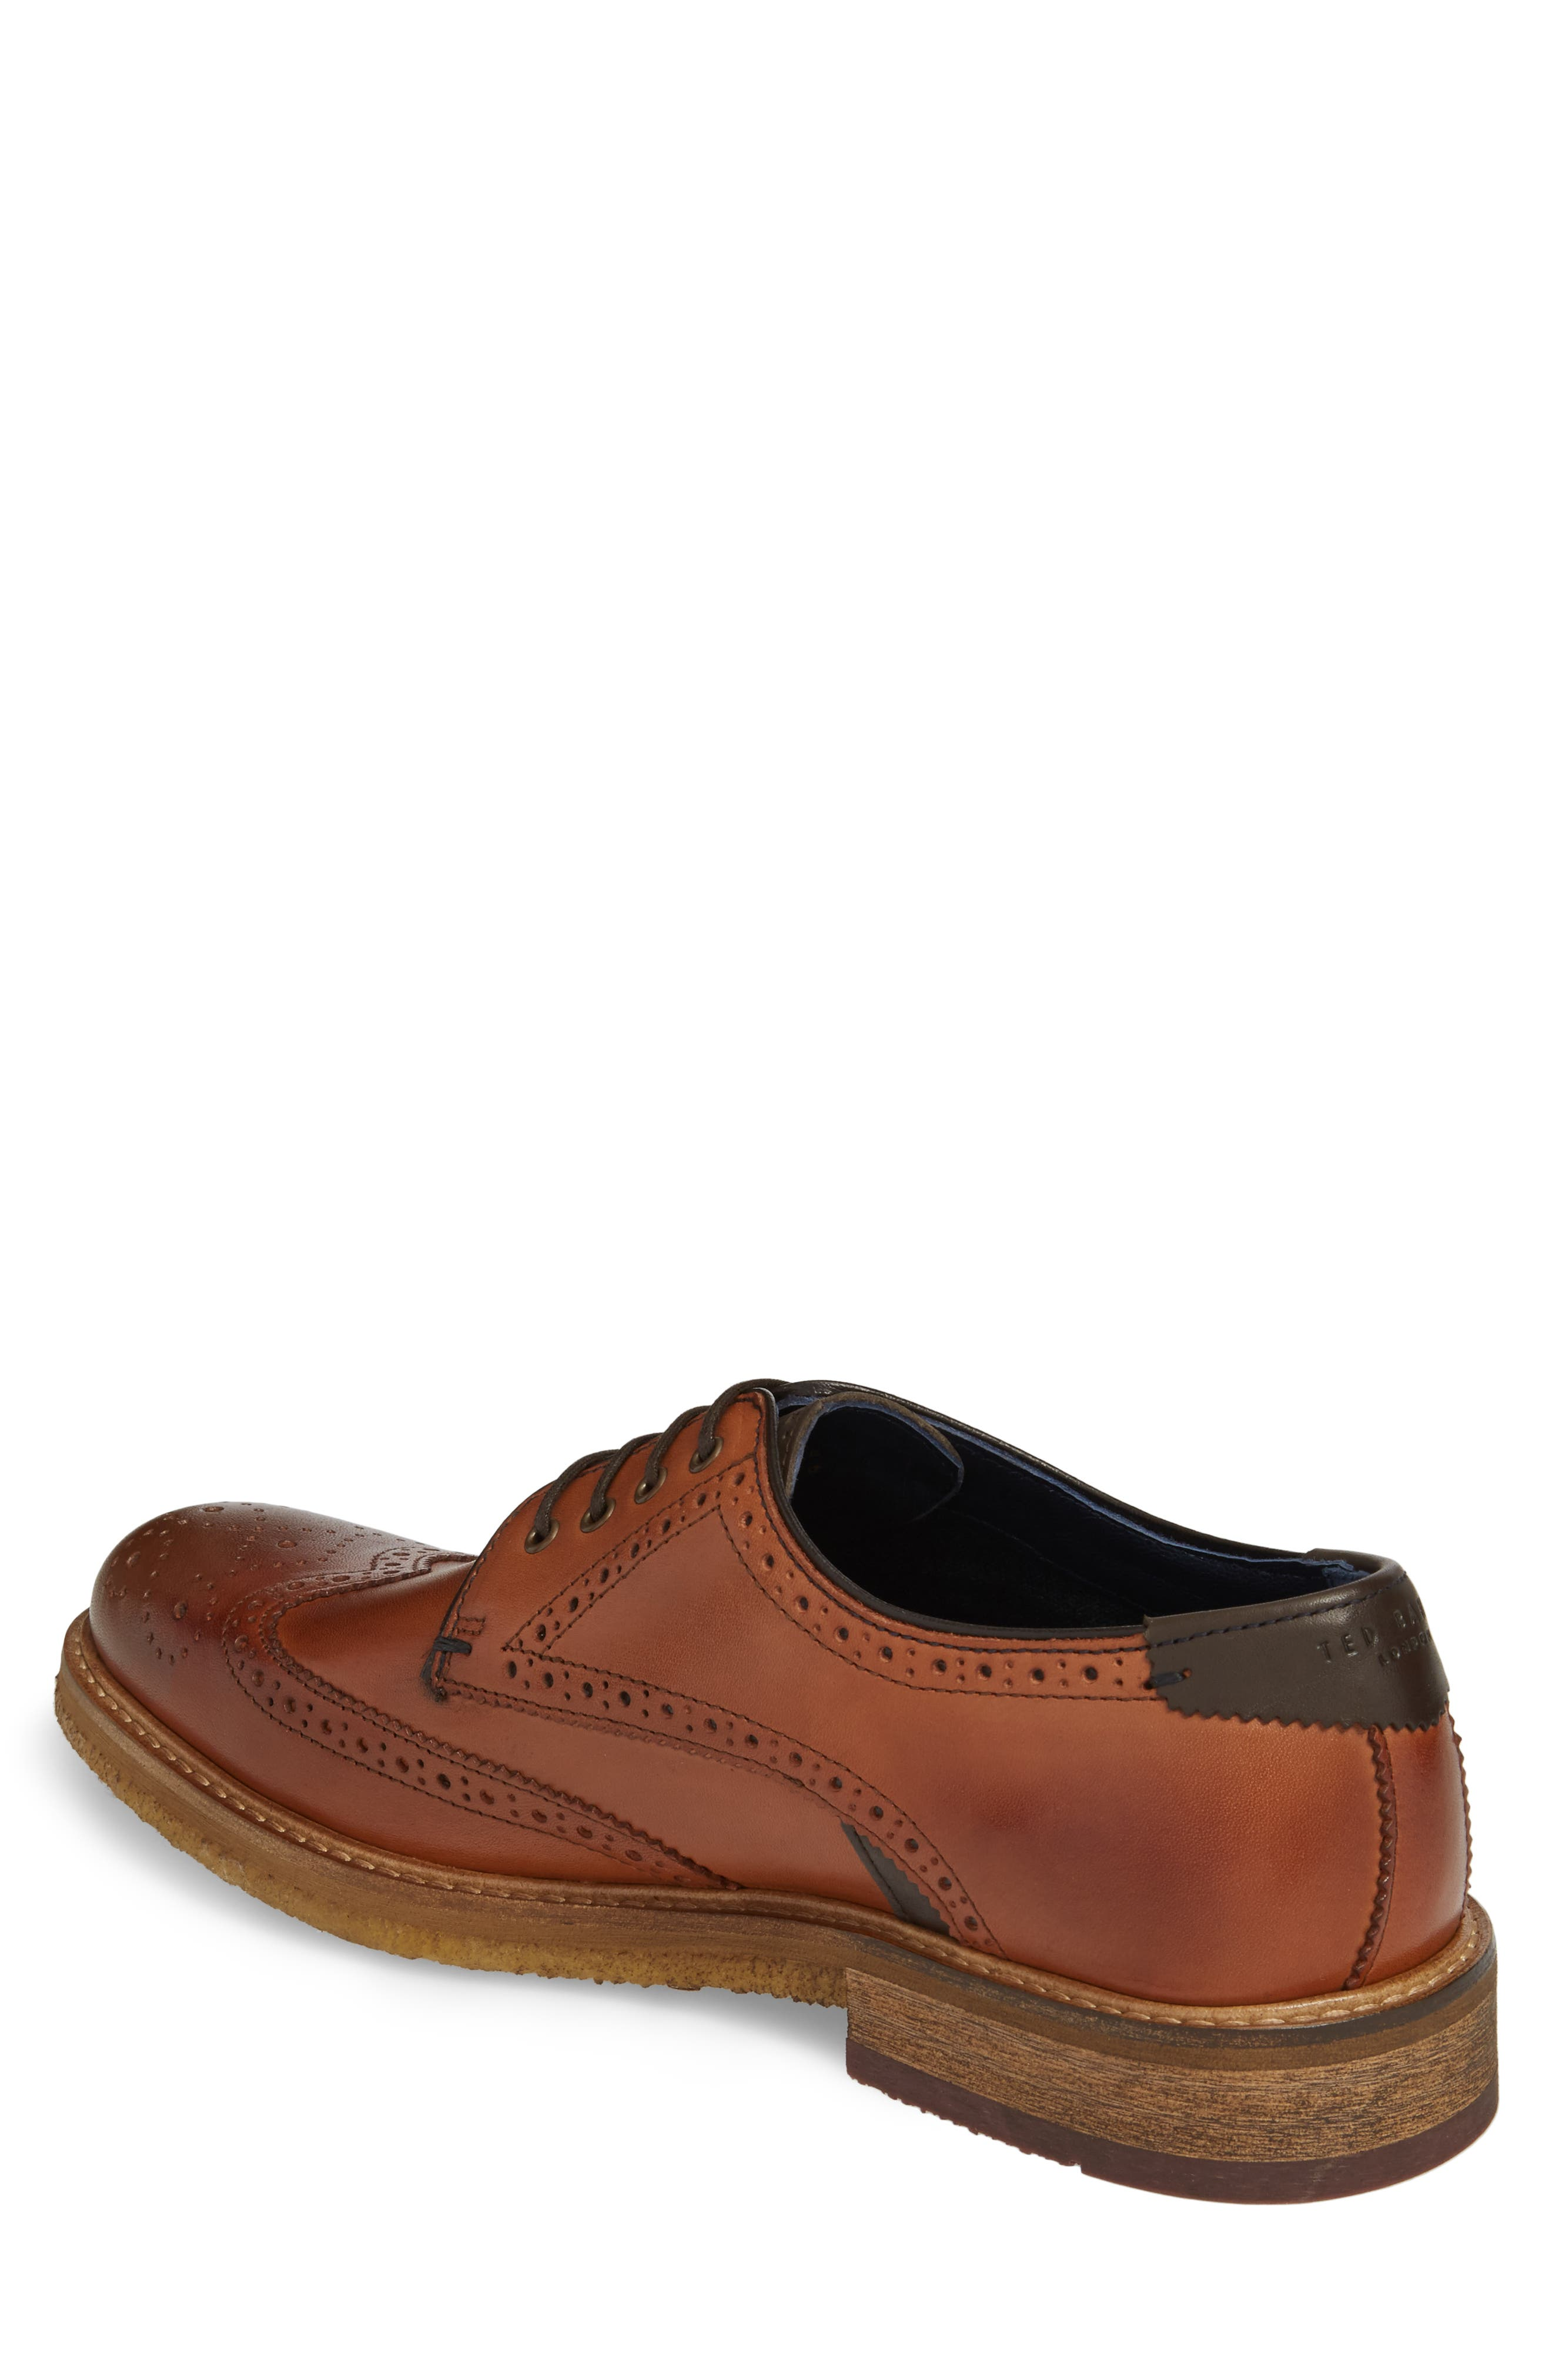 Prycce Wingtip Derby,                             Alternate thumbnail 2, color,                             Tan Leather